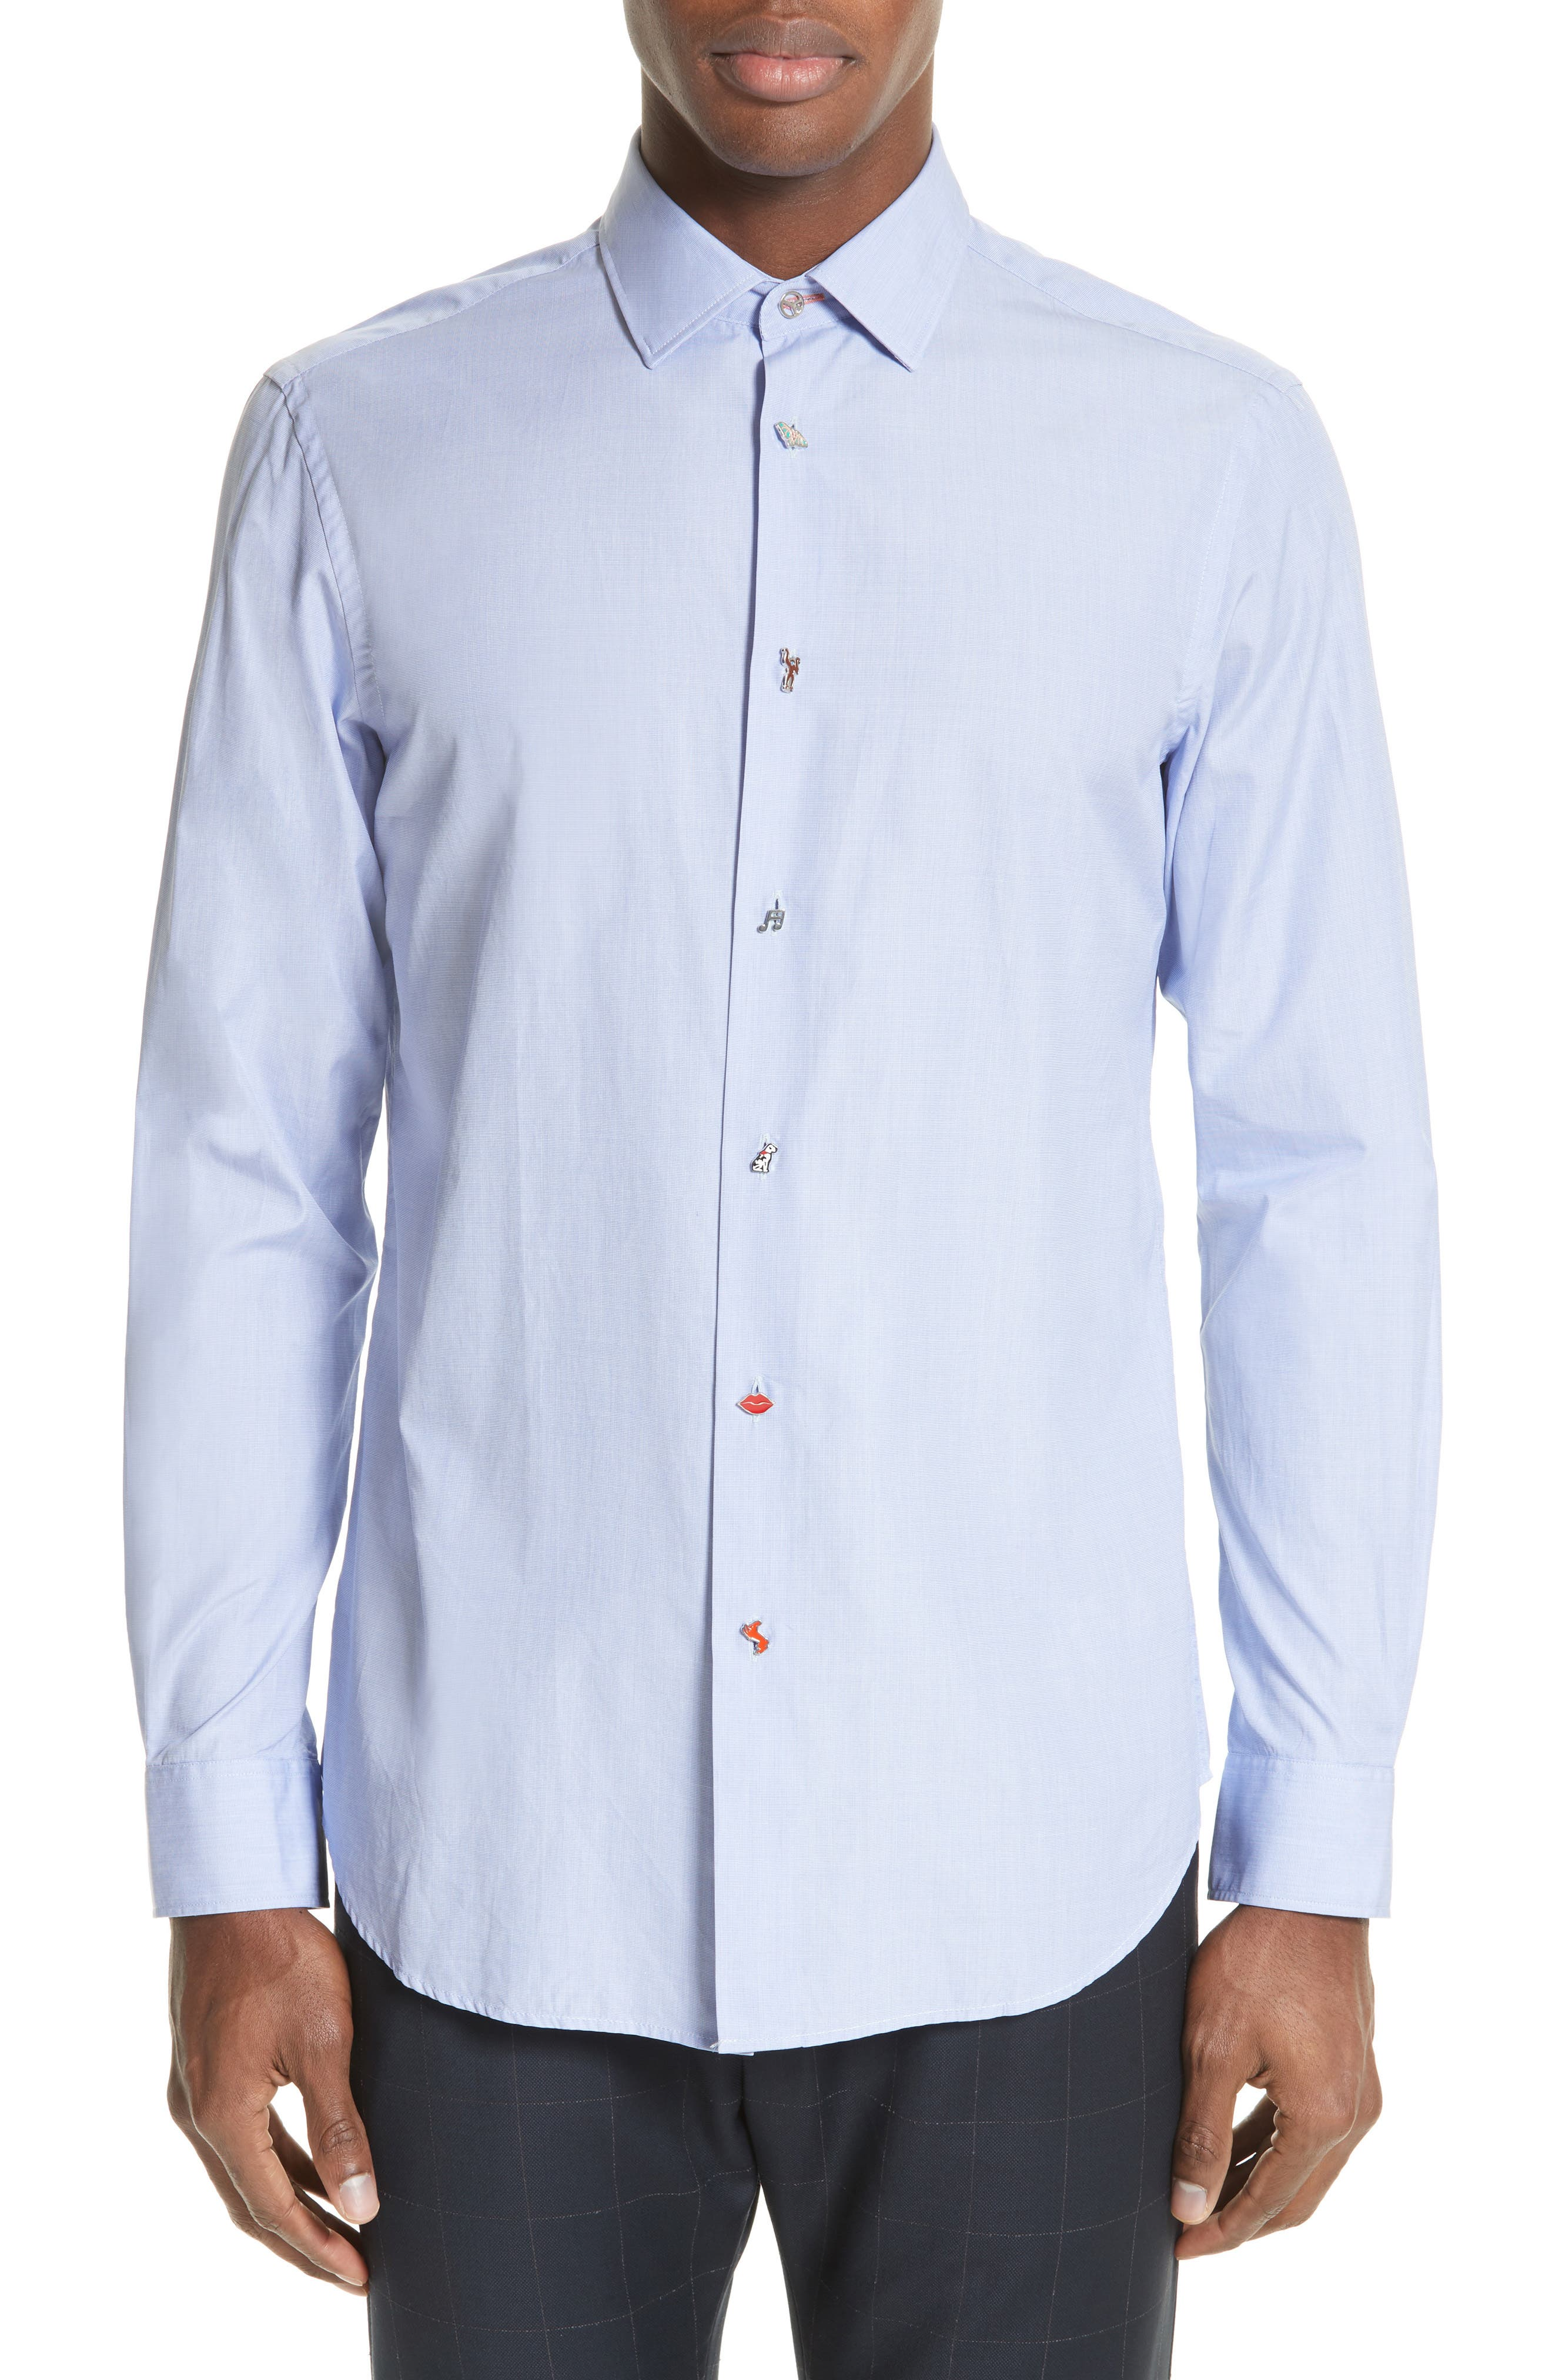 Alternate Image 1 Selected - Paul Smith Charm Button Sport Shirt